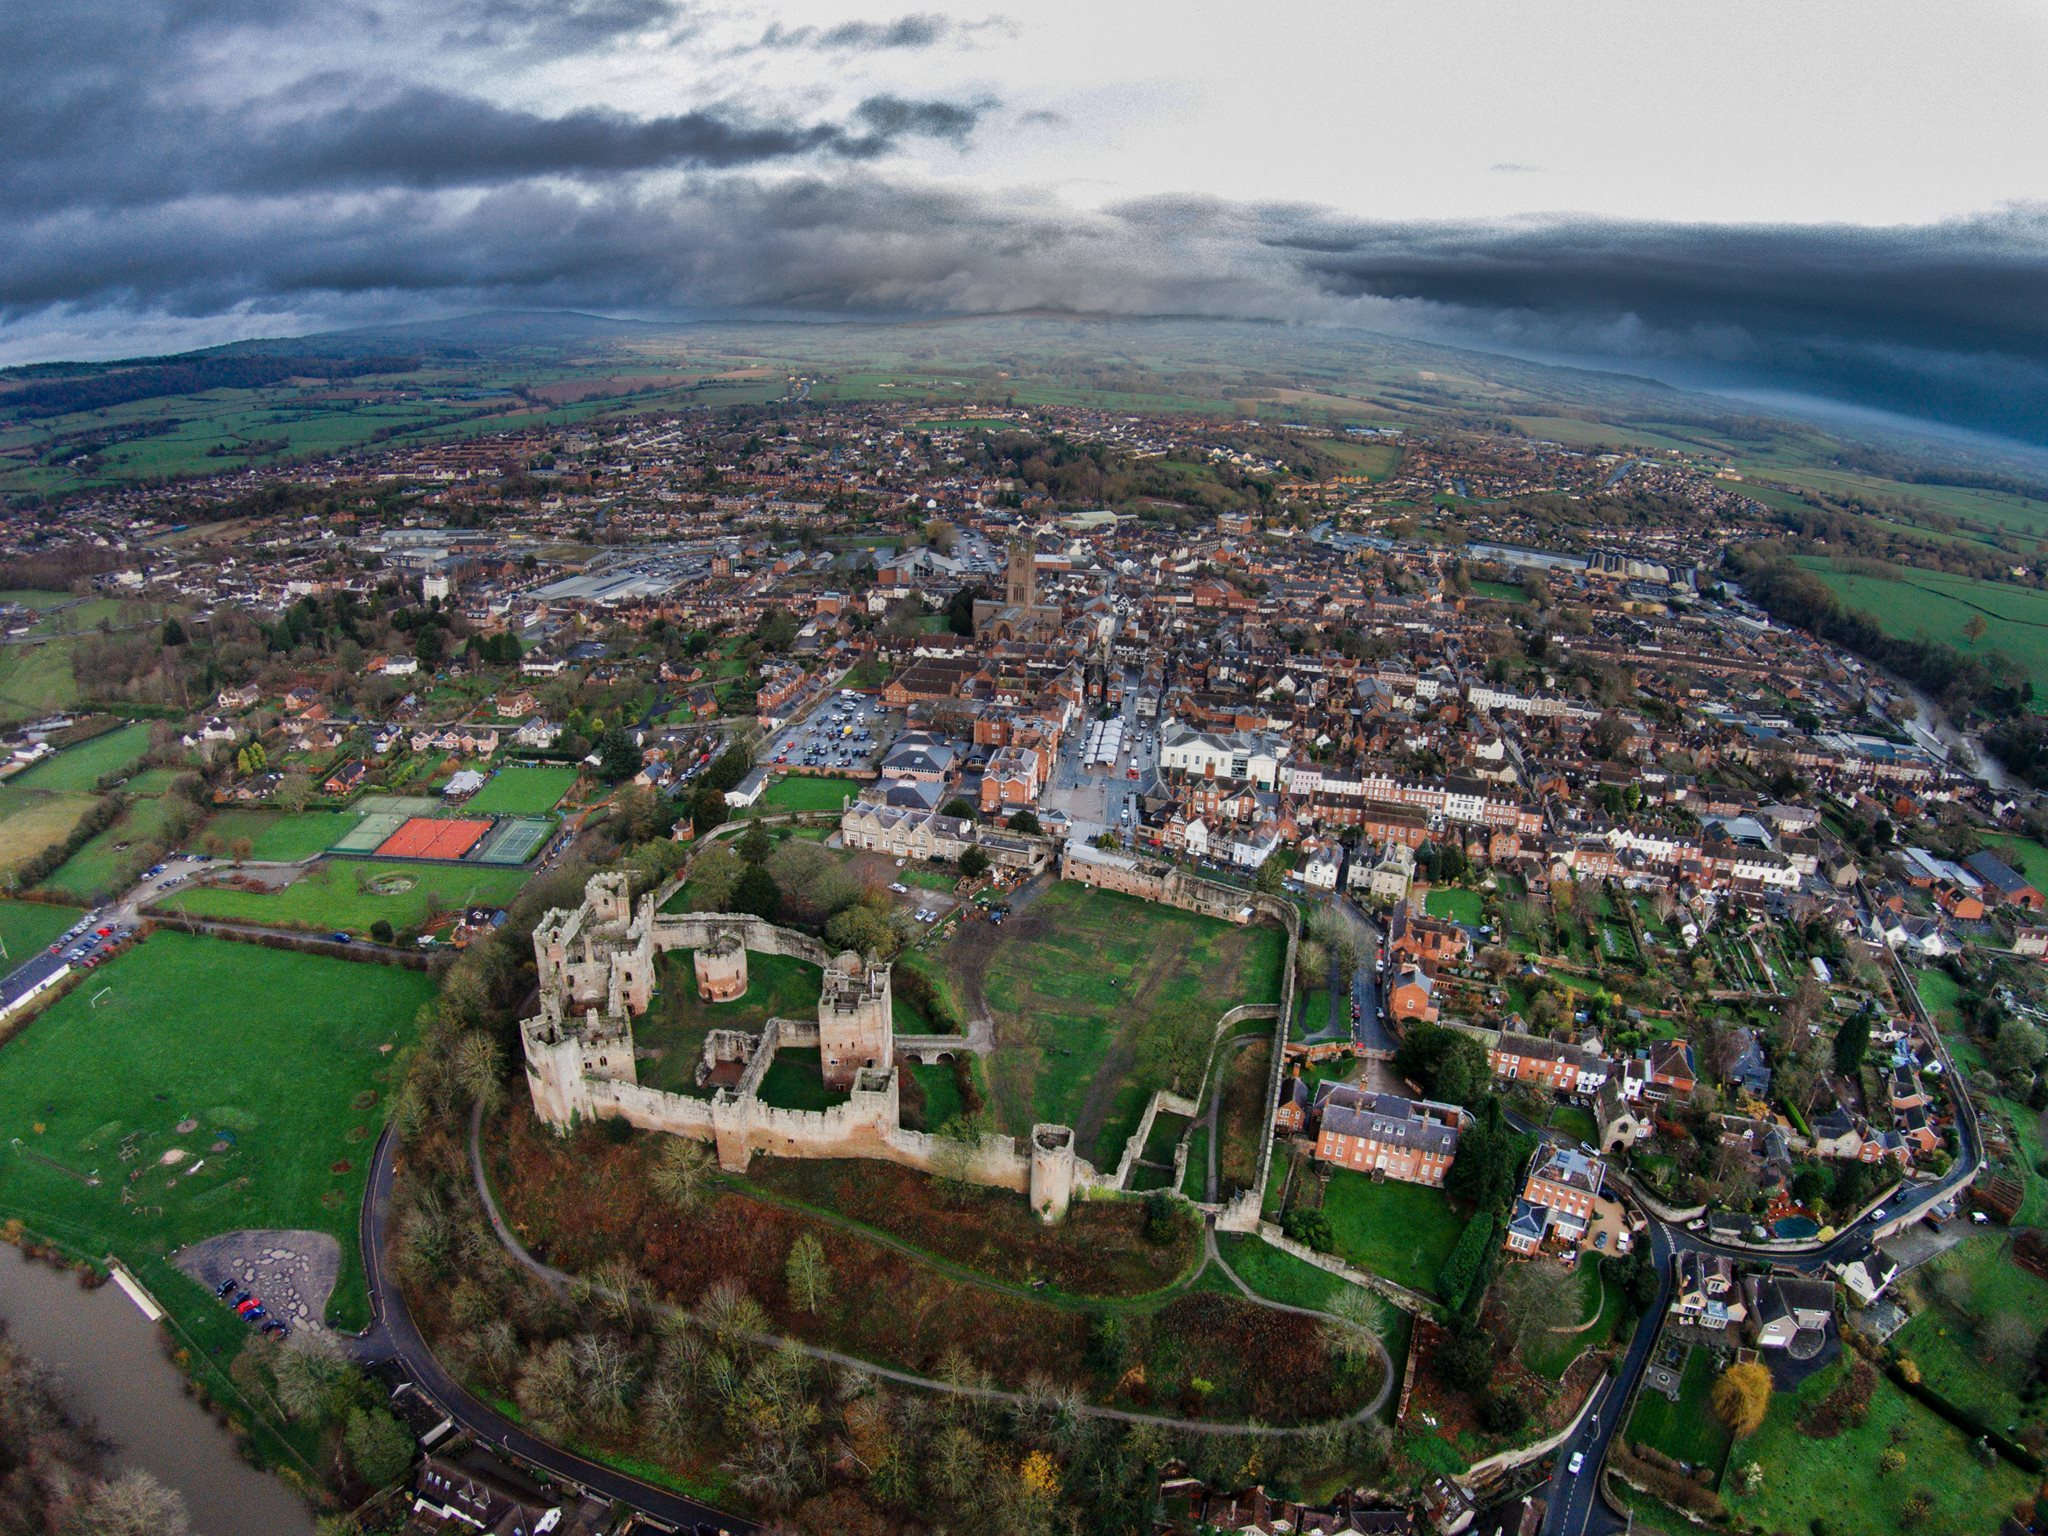 Ludlow from the air. Photo: Nick Wall